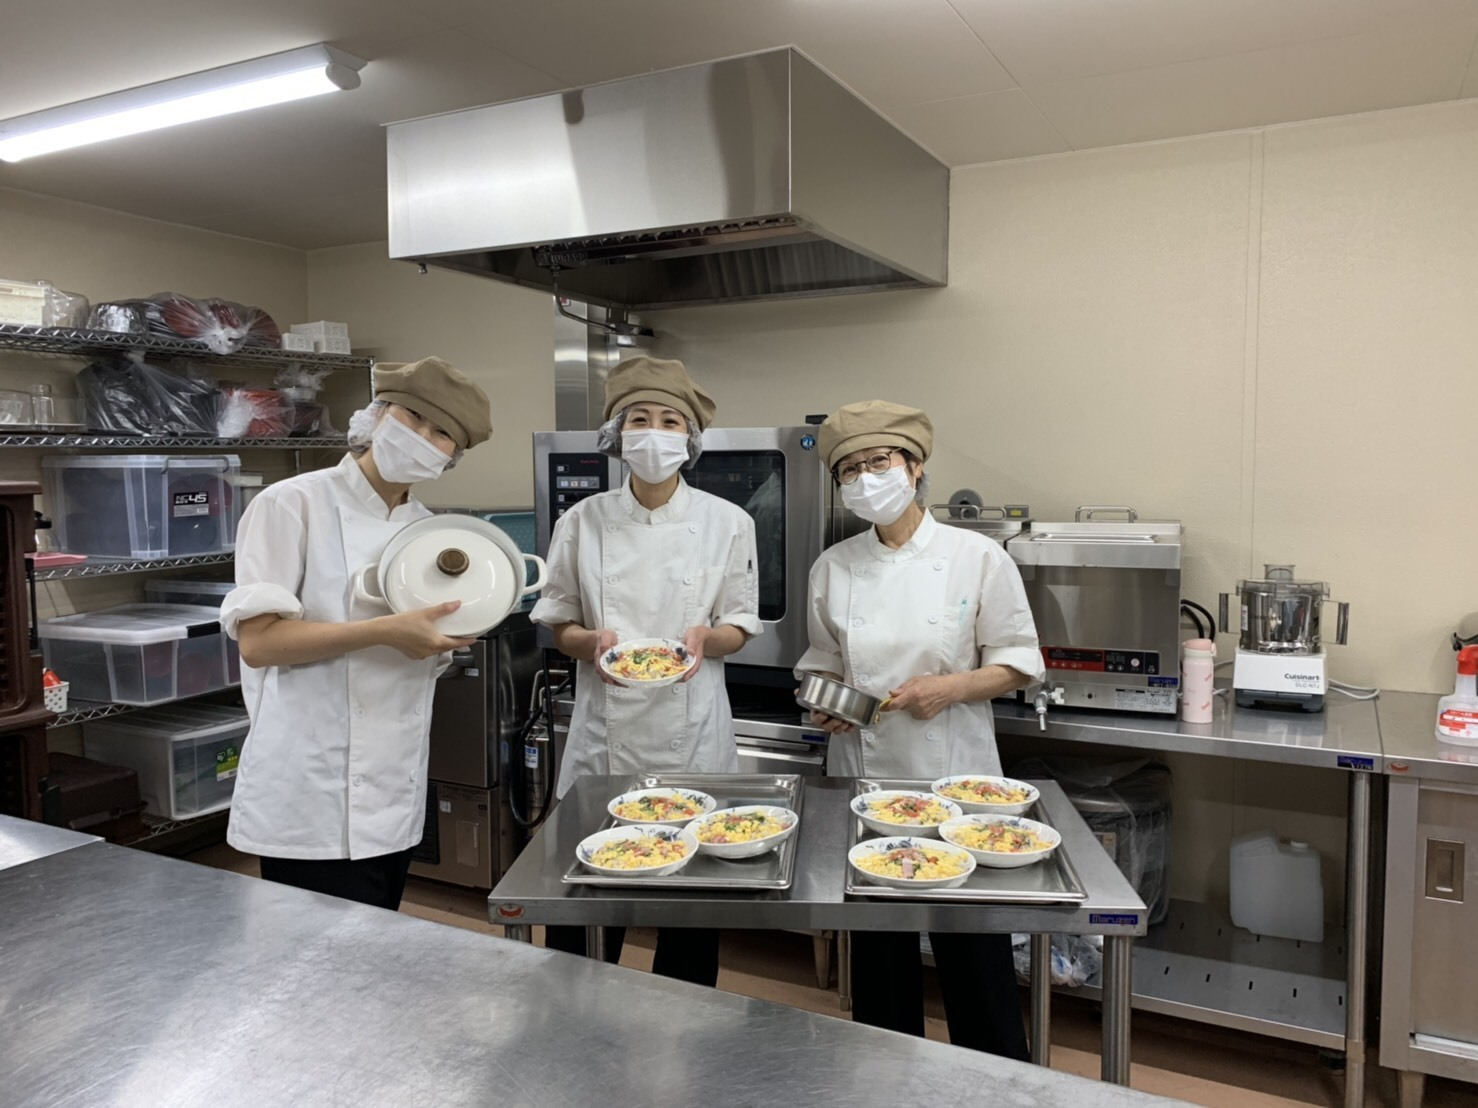 Title: Cooking support staff in Kanagawa wanted【①Kawasaki】